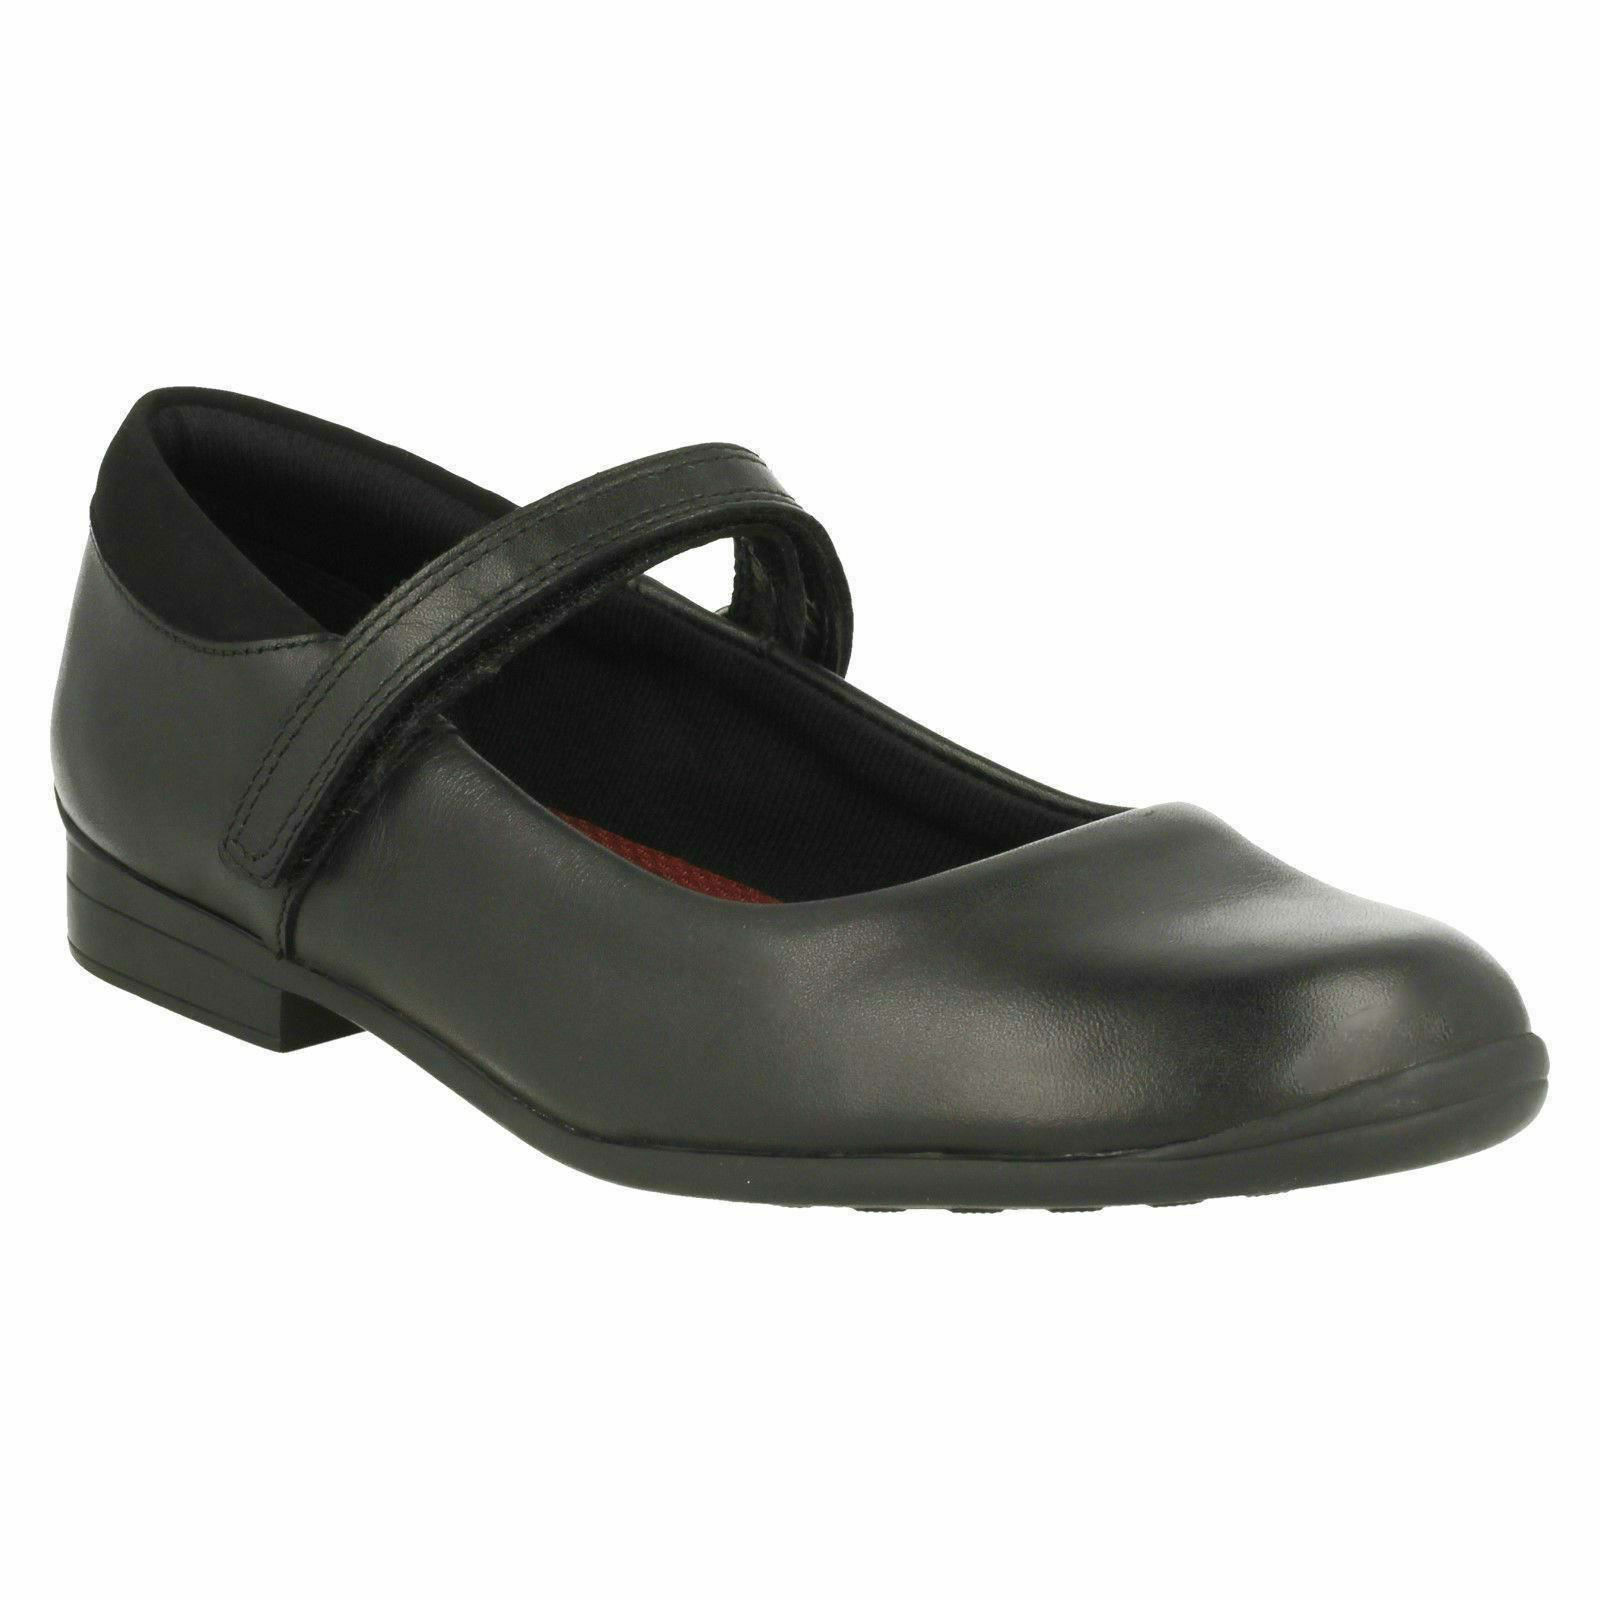 JAMIE STAR GIRLS CLARKS INFANT RIPTAPE STRAP CASUAL LEATHER SCHOOL SHOES SIZE